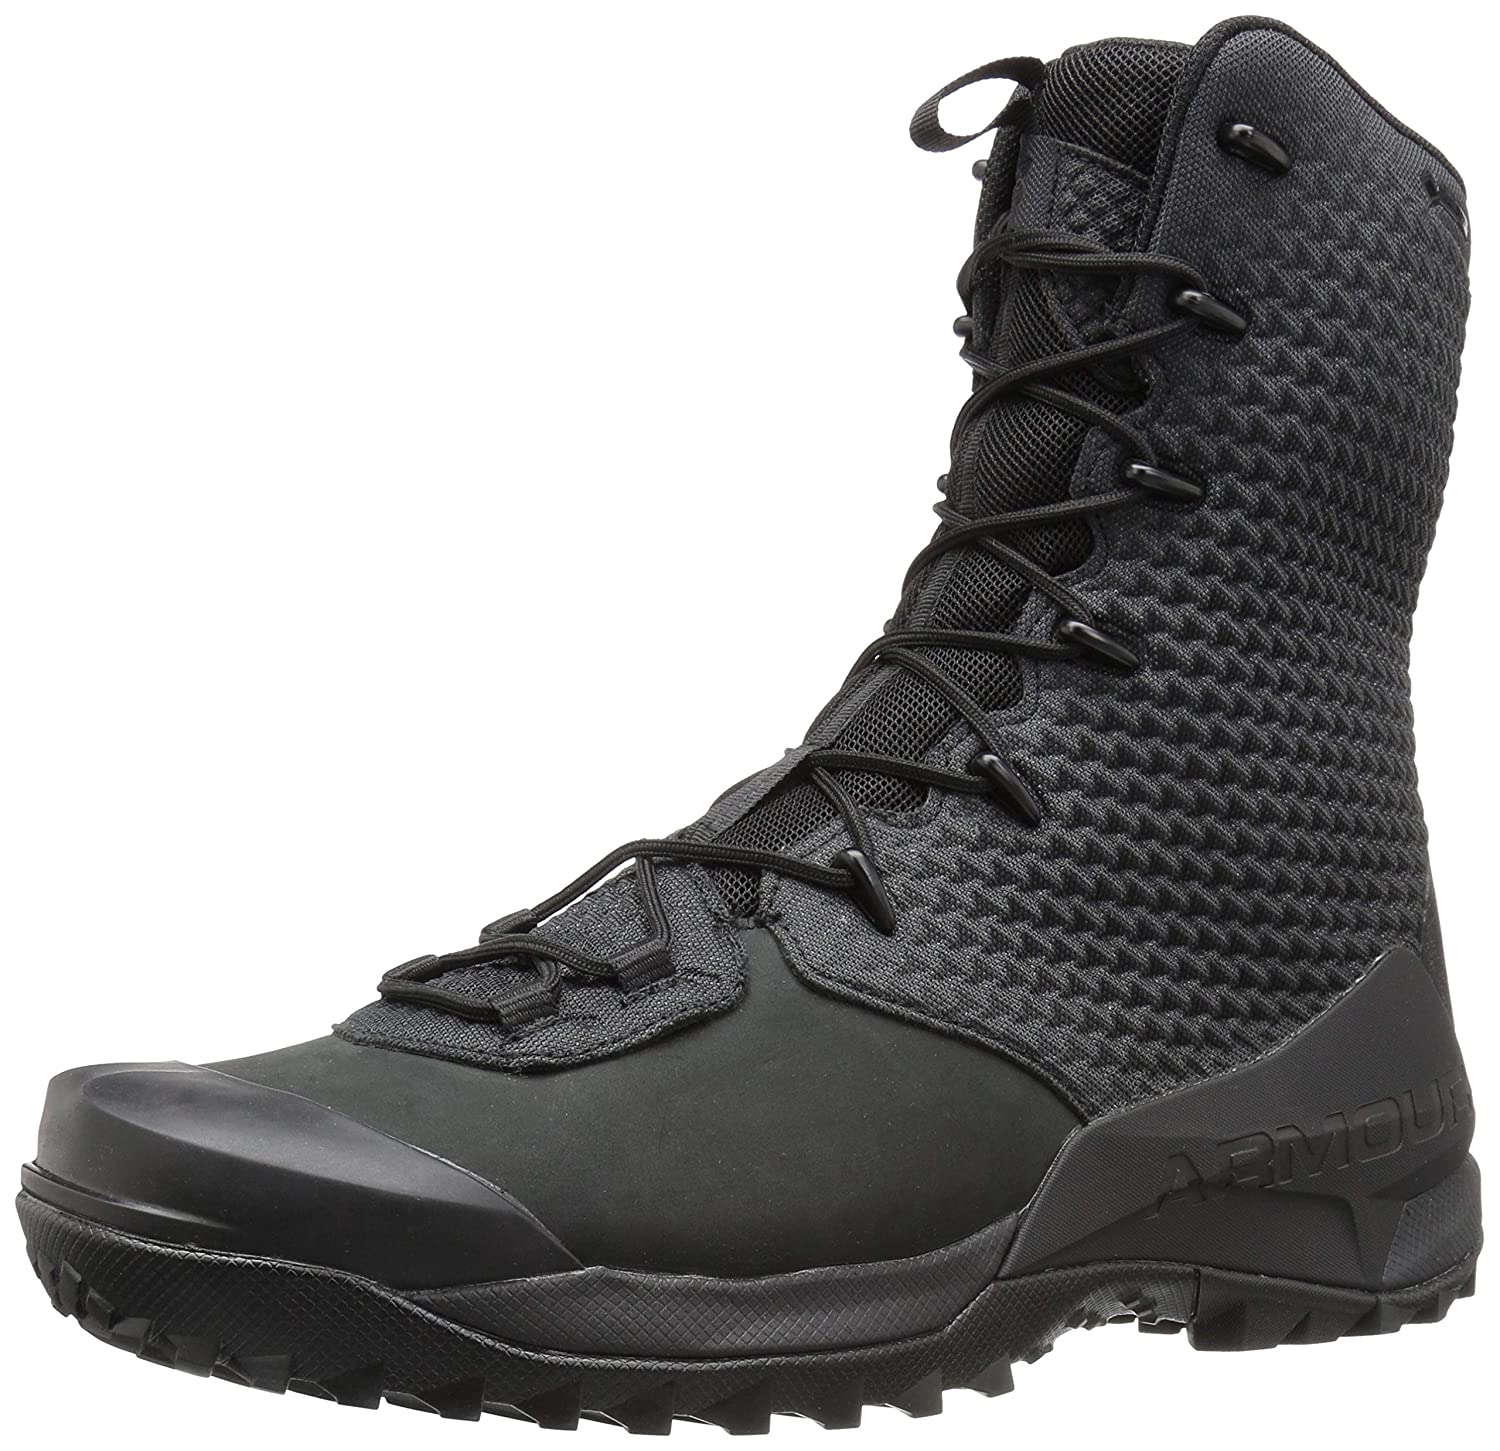 Under Armour Men's Infil Ops Gore-tex Ankle Boot 1287948